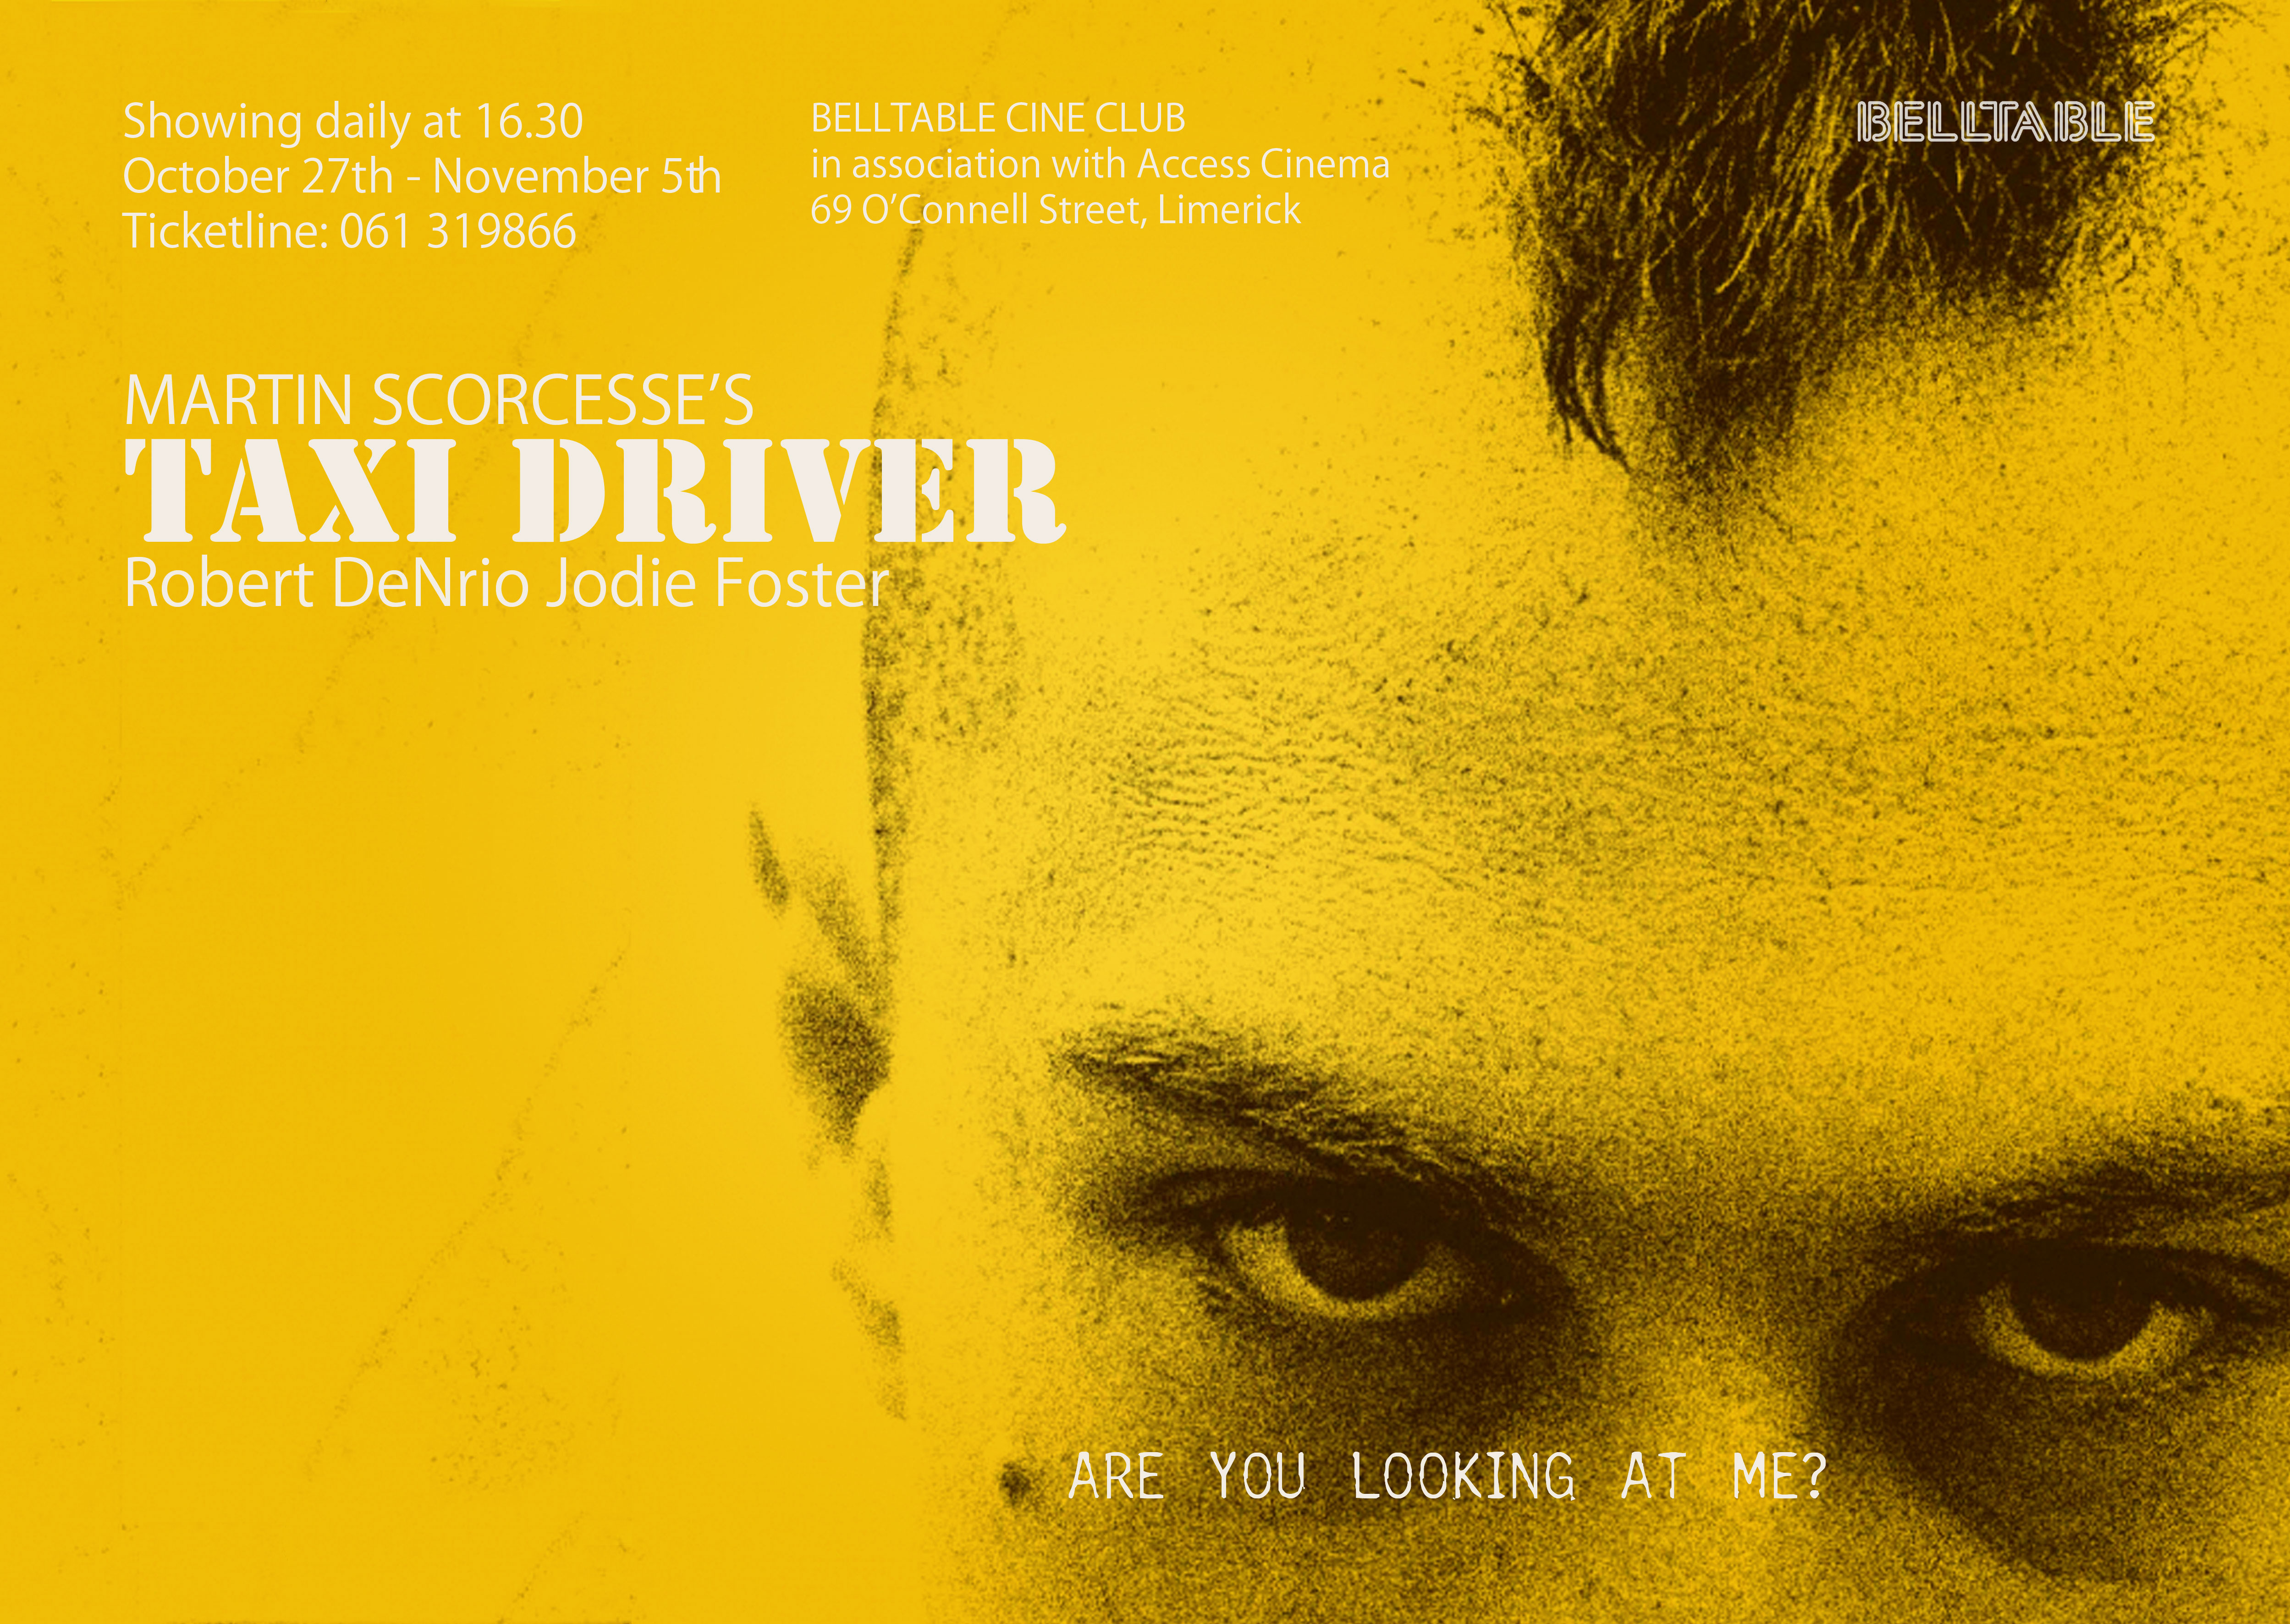 taxi driver film essay An essay or paper on the taxi drivers taxi drivers, we see them everyday and can regard them as any other day-to-day worker however, more than likely, society.